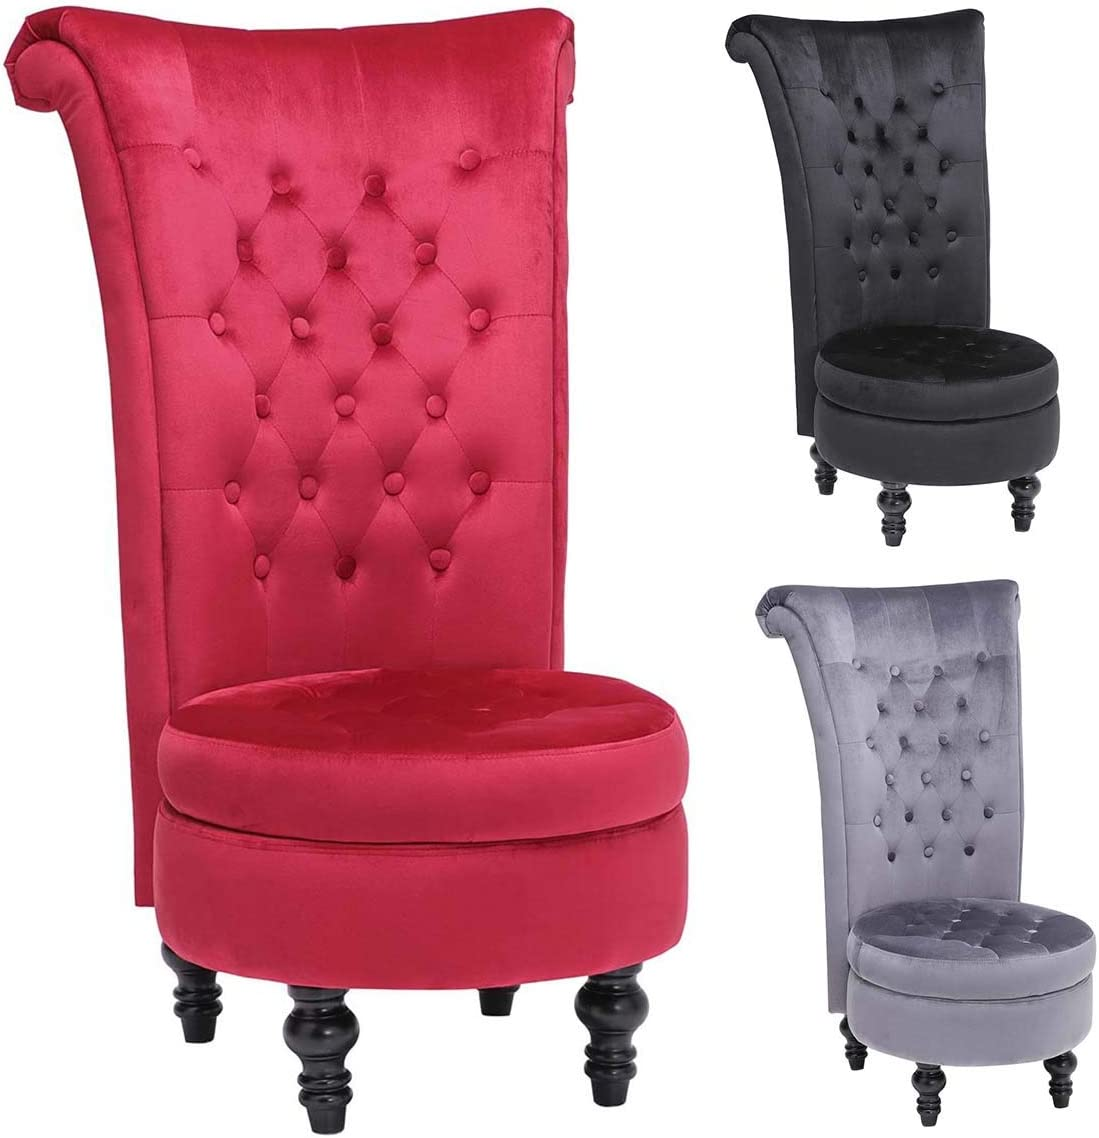 YC High Back Accent Chair Throne Chair Velvet Chair with Storage for Bedroom Living Room Dressing Table Seat Wood Legs